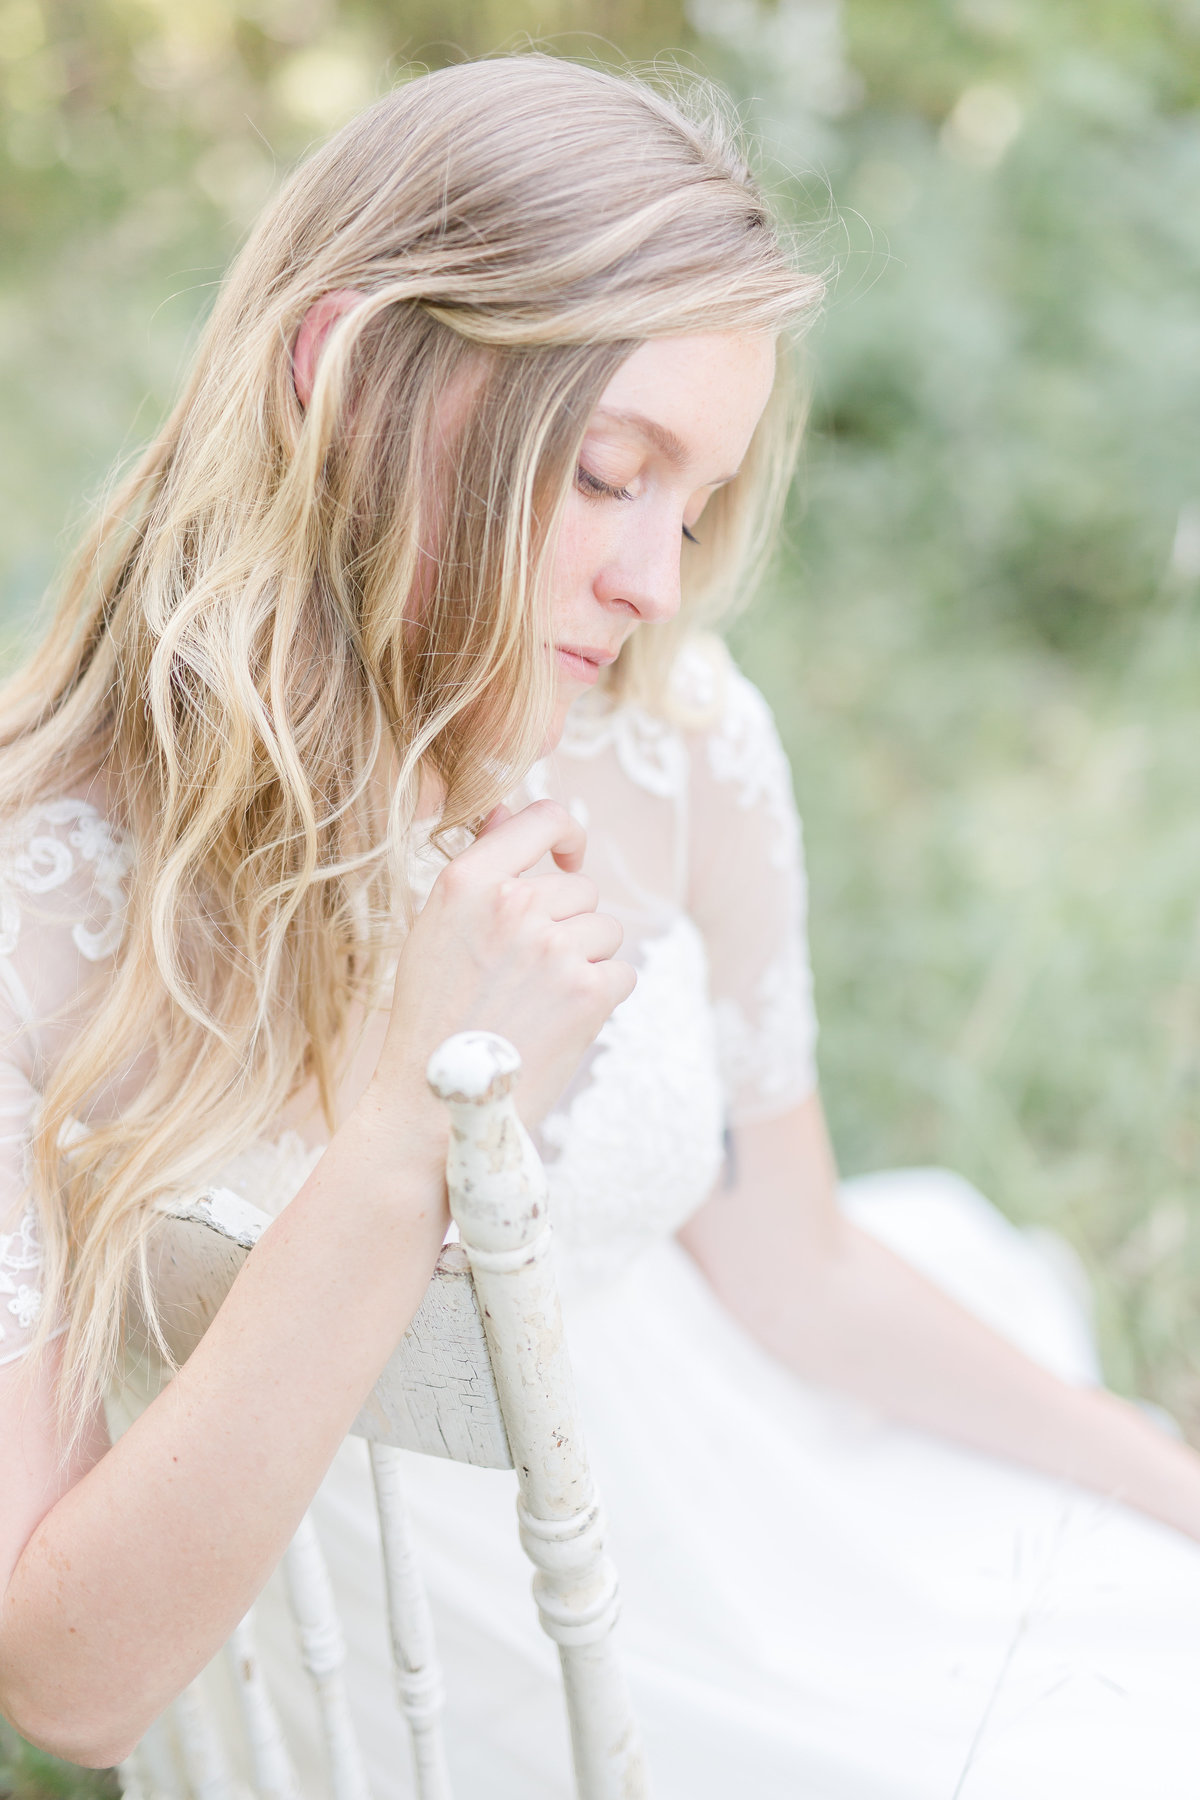 Kailey - Styled Shoot - New Edits-119